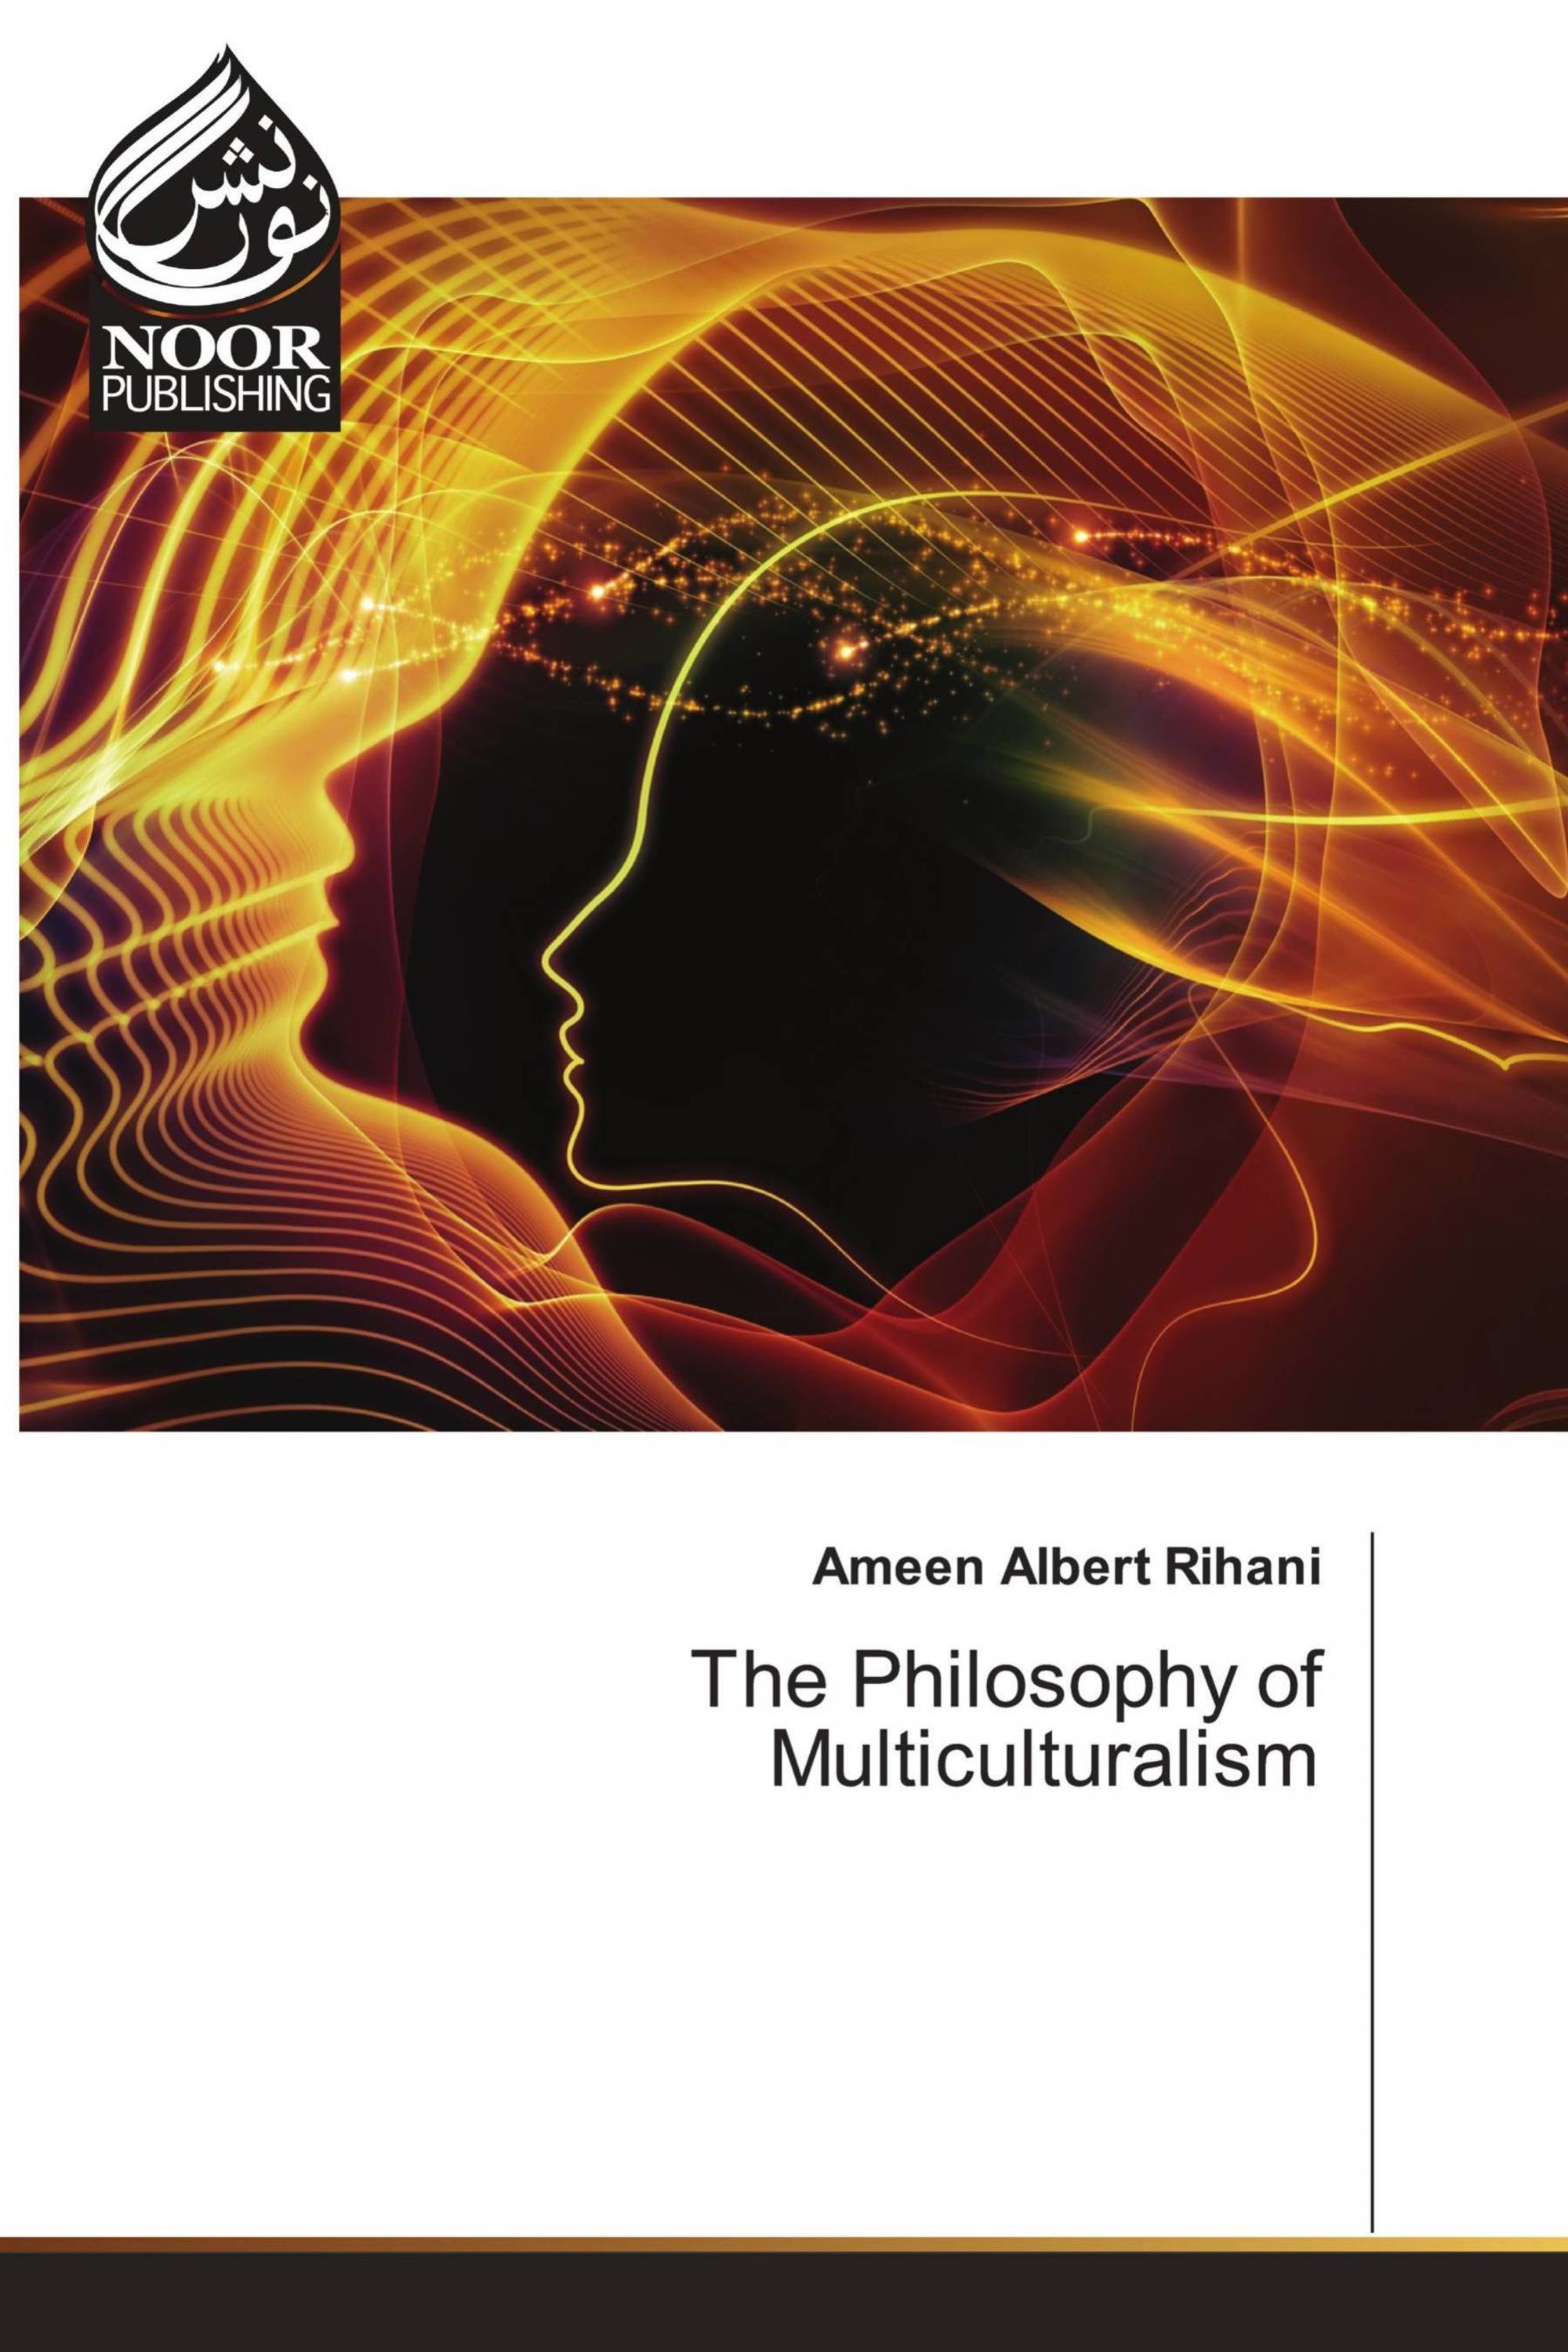 The Philosophy of Multiculturalism